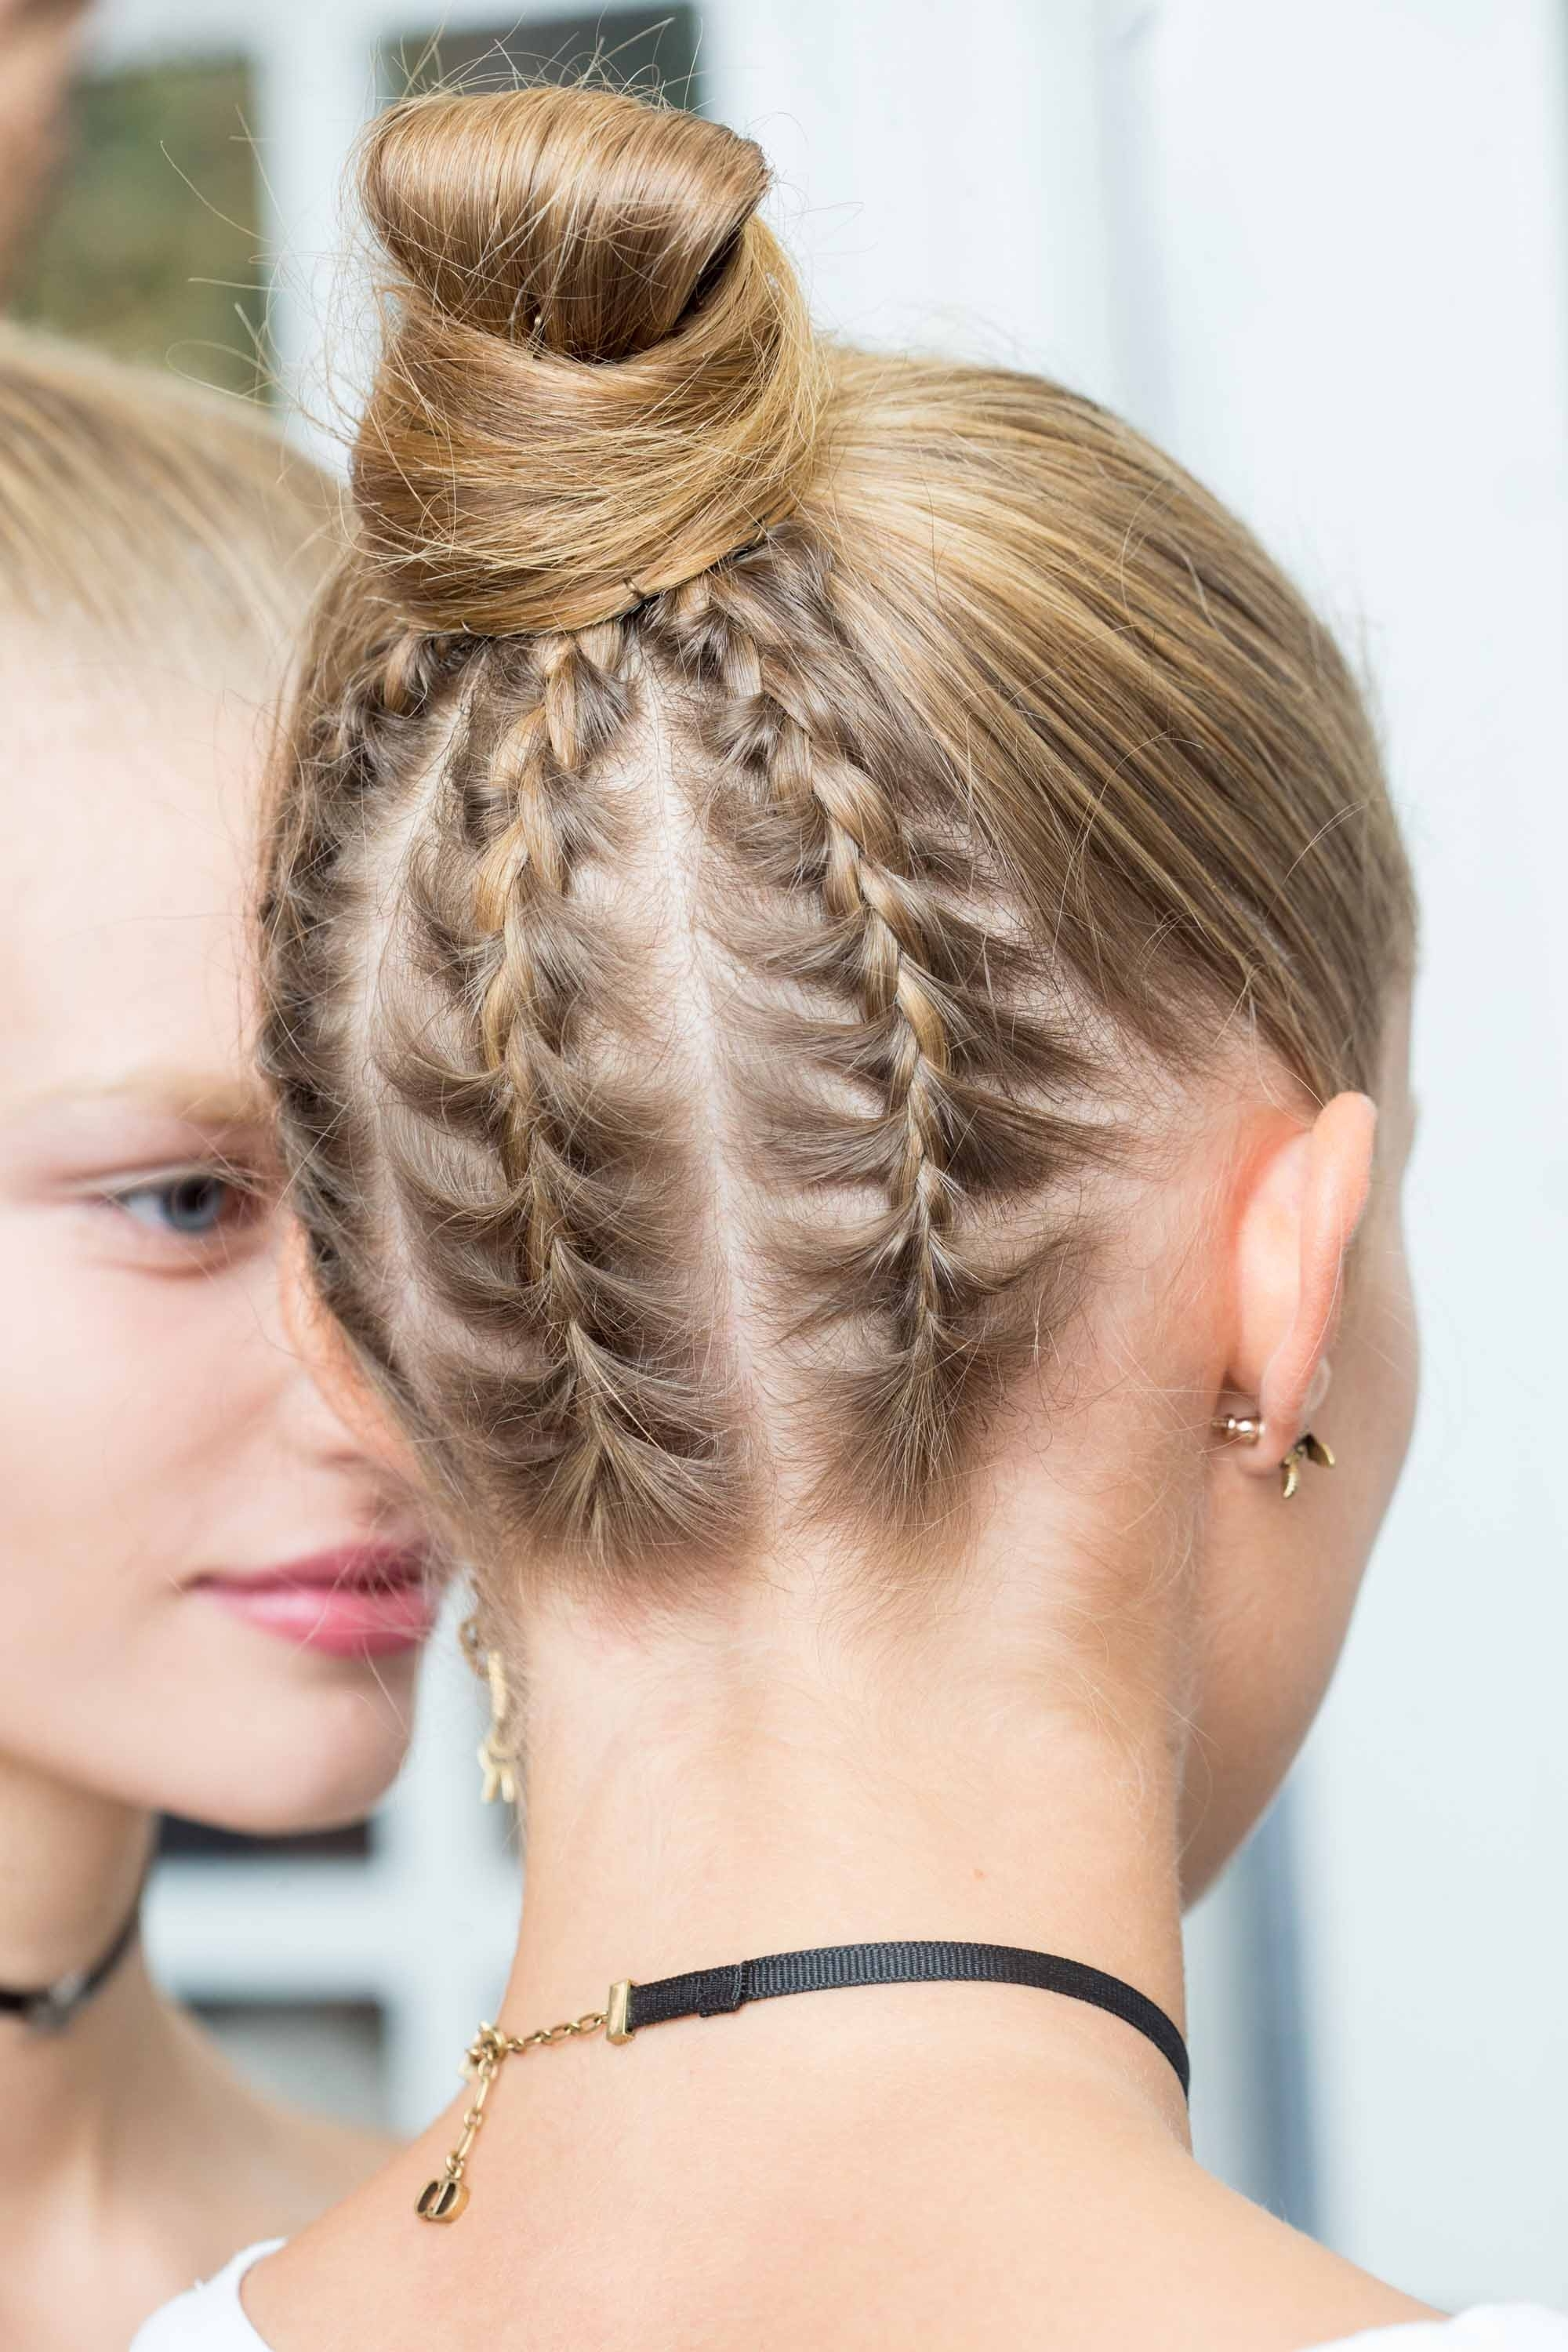 5 Easy Bun Hairstyles To Try This Party Season For Braid Lovers Within Most Recent Cornrows Hairstyles With Buns (View 3 of 15)